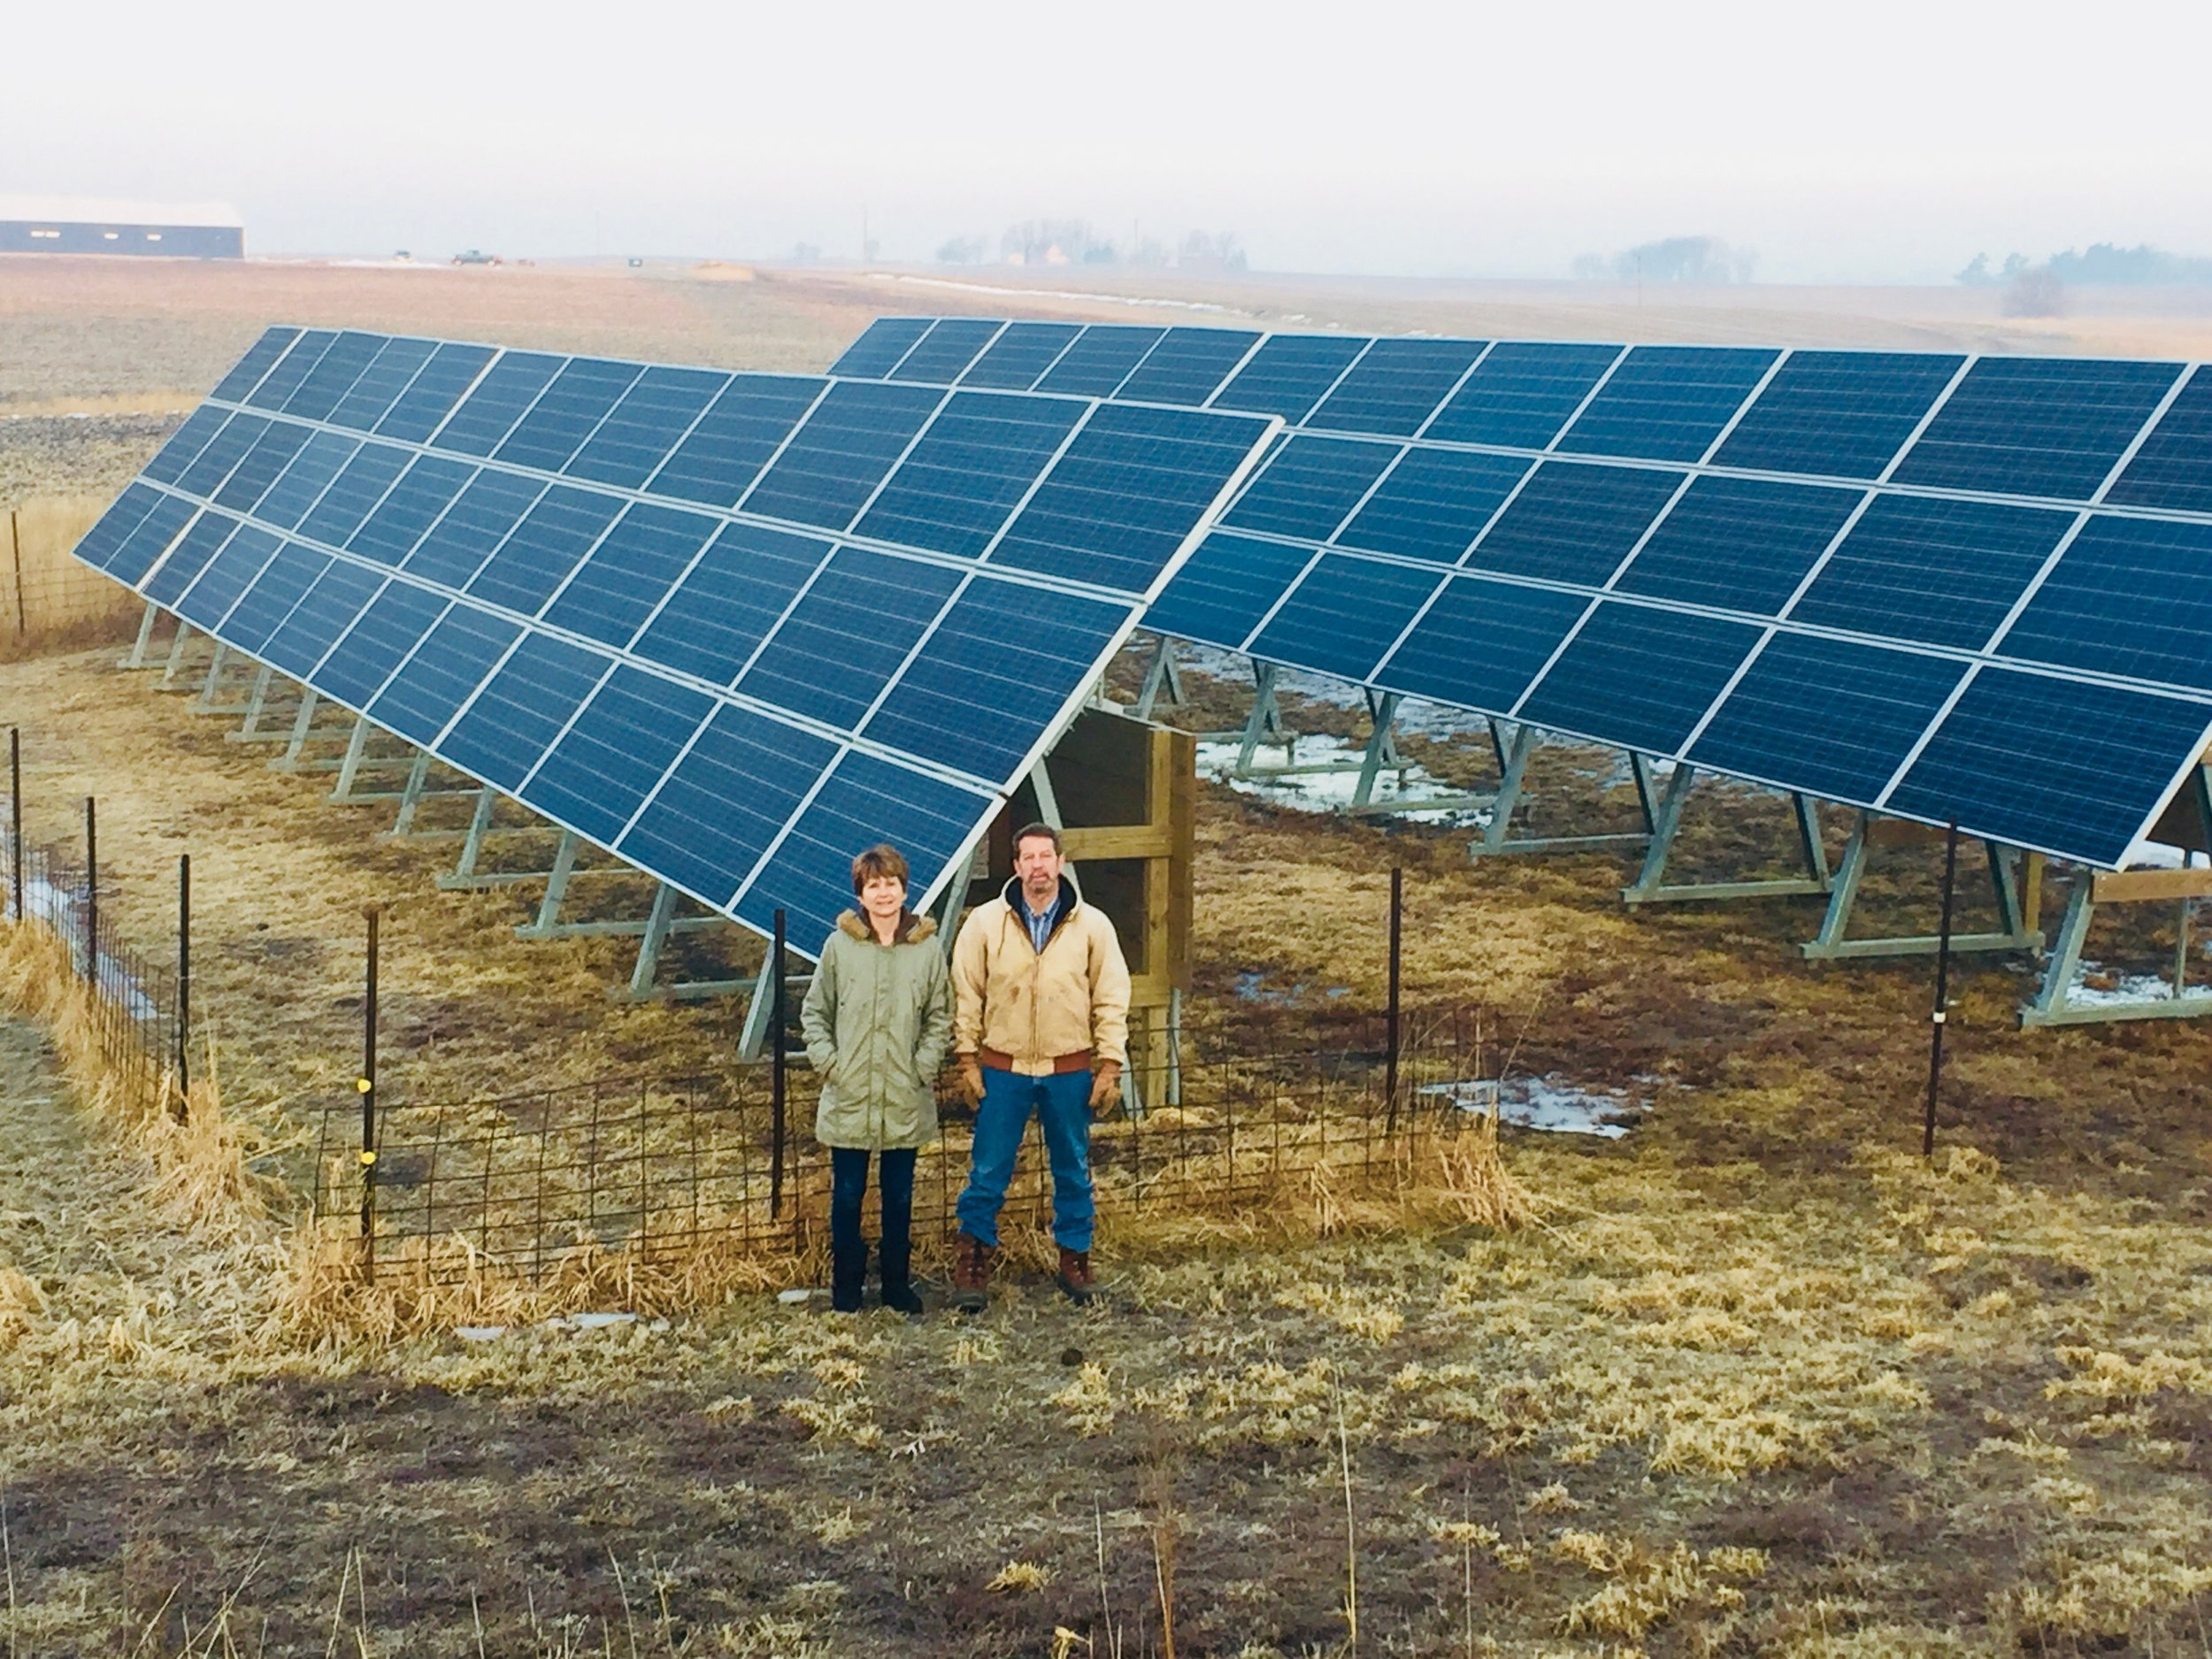 Tanner Briggs Faaborg tells the story of solar on his family's farm, pictured above